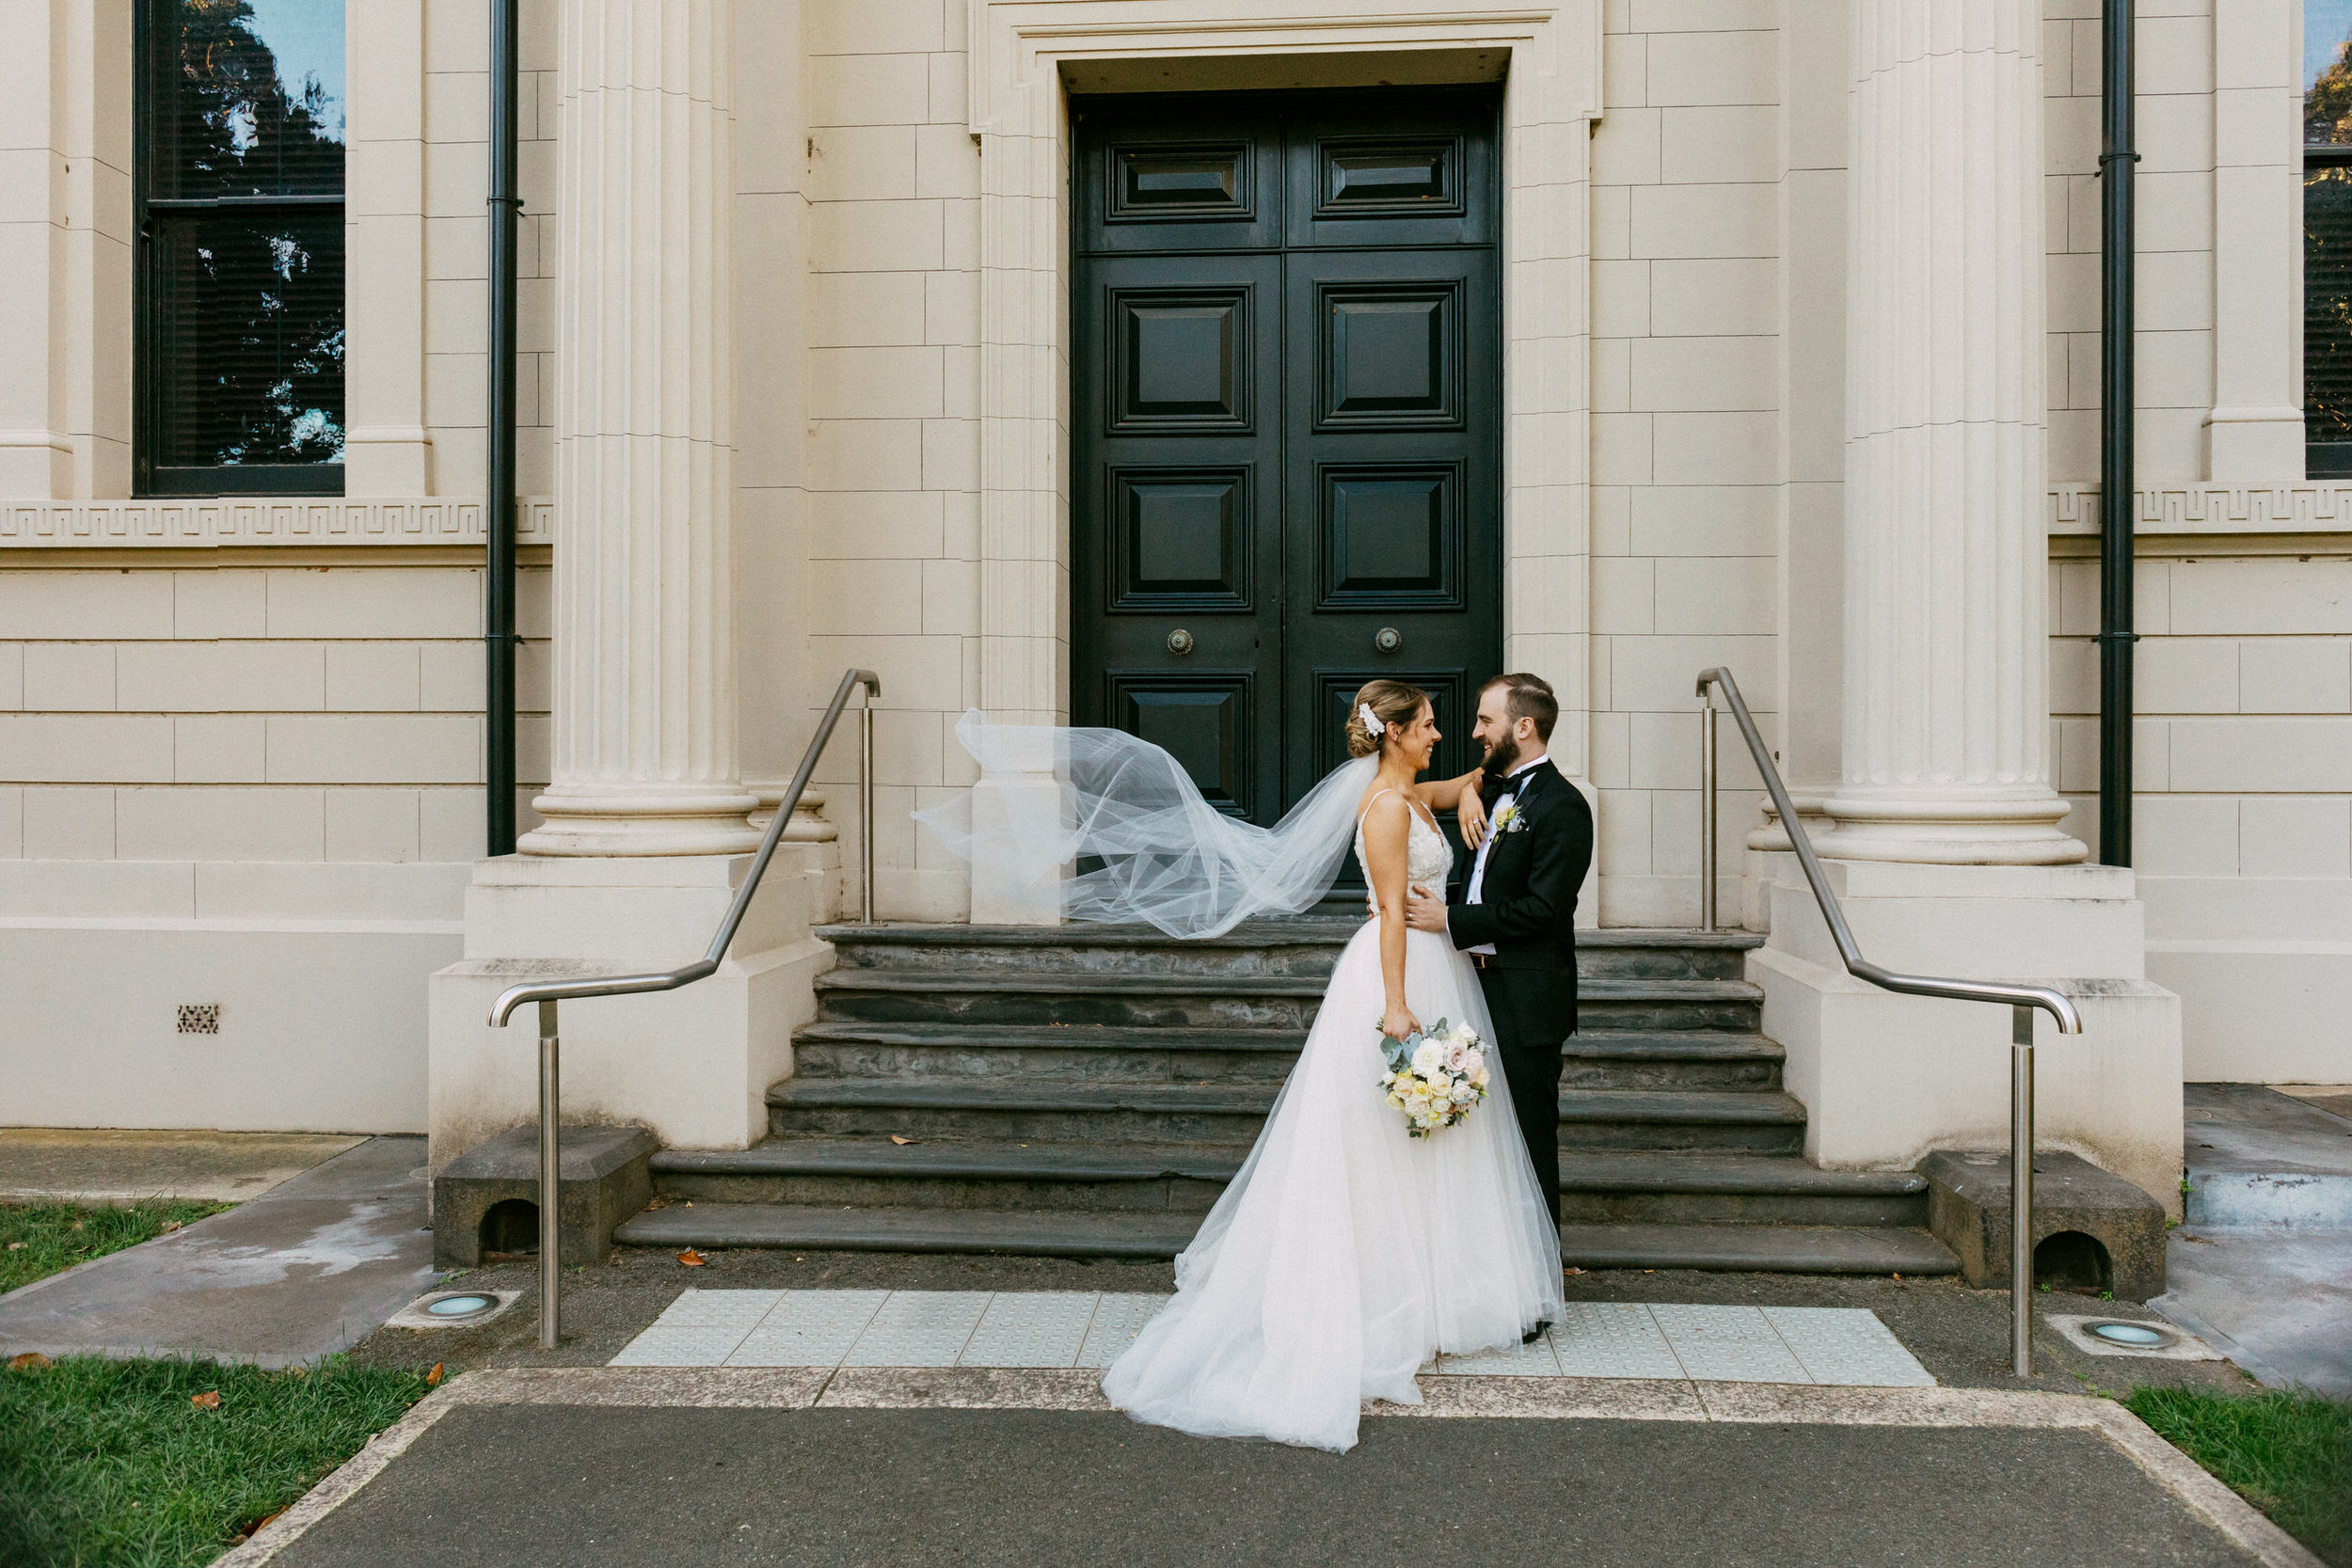 Adelaide Wedding 2019 101.jpg